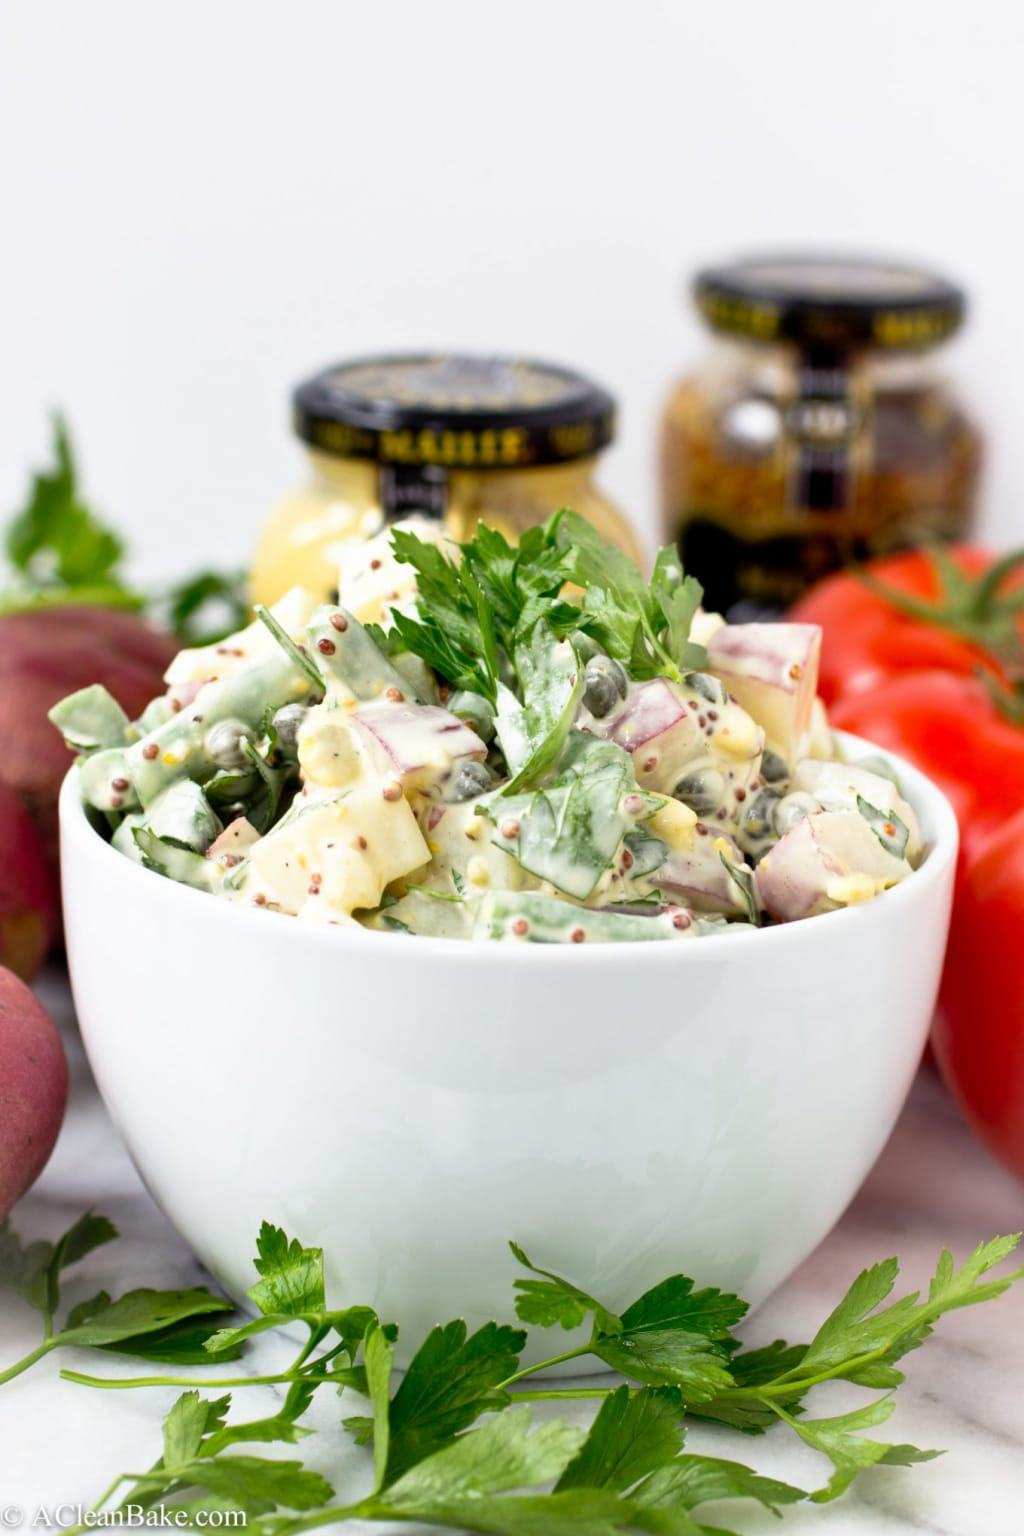 Potato Salad with Green Beans, Whole Grain Mustard and Capers (Gluten Free and Paleo)